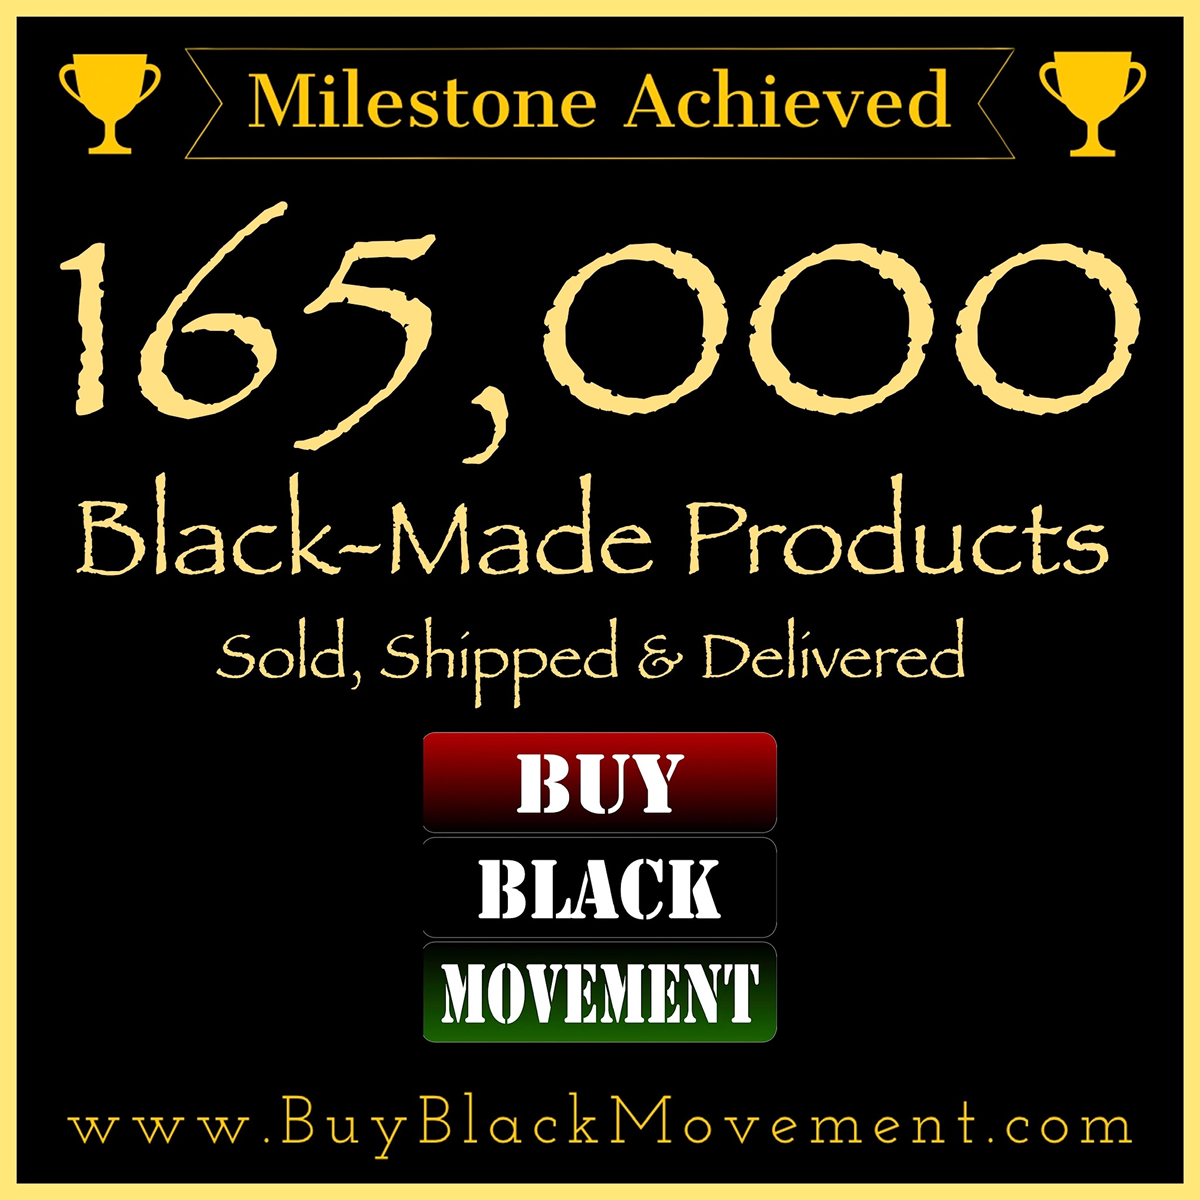 165,000 Products Sold